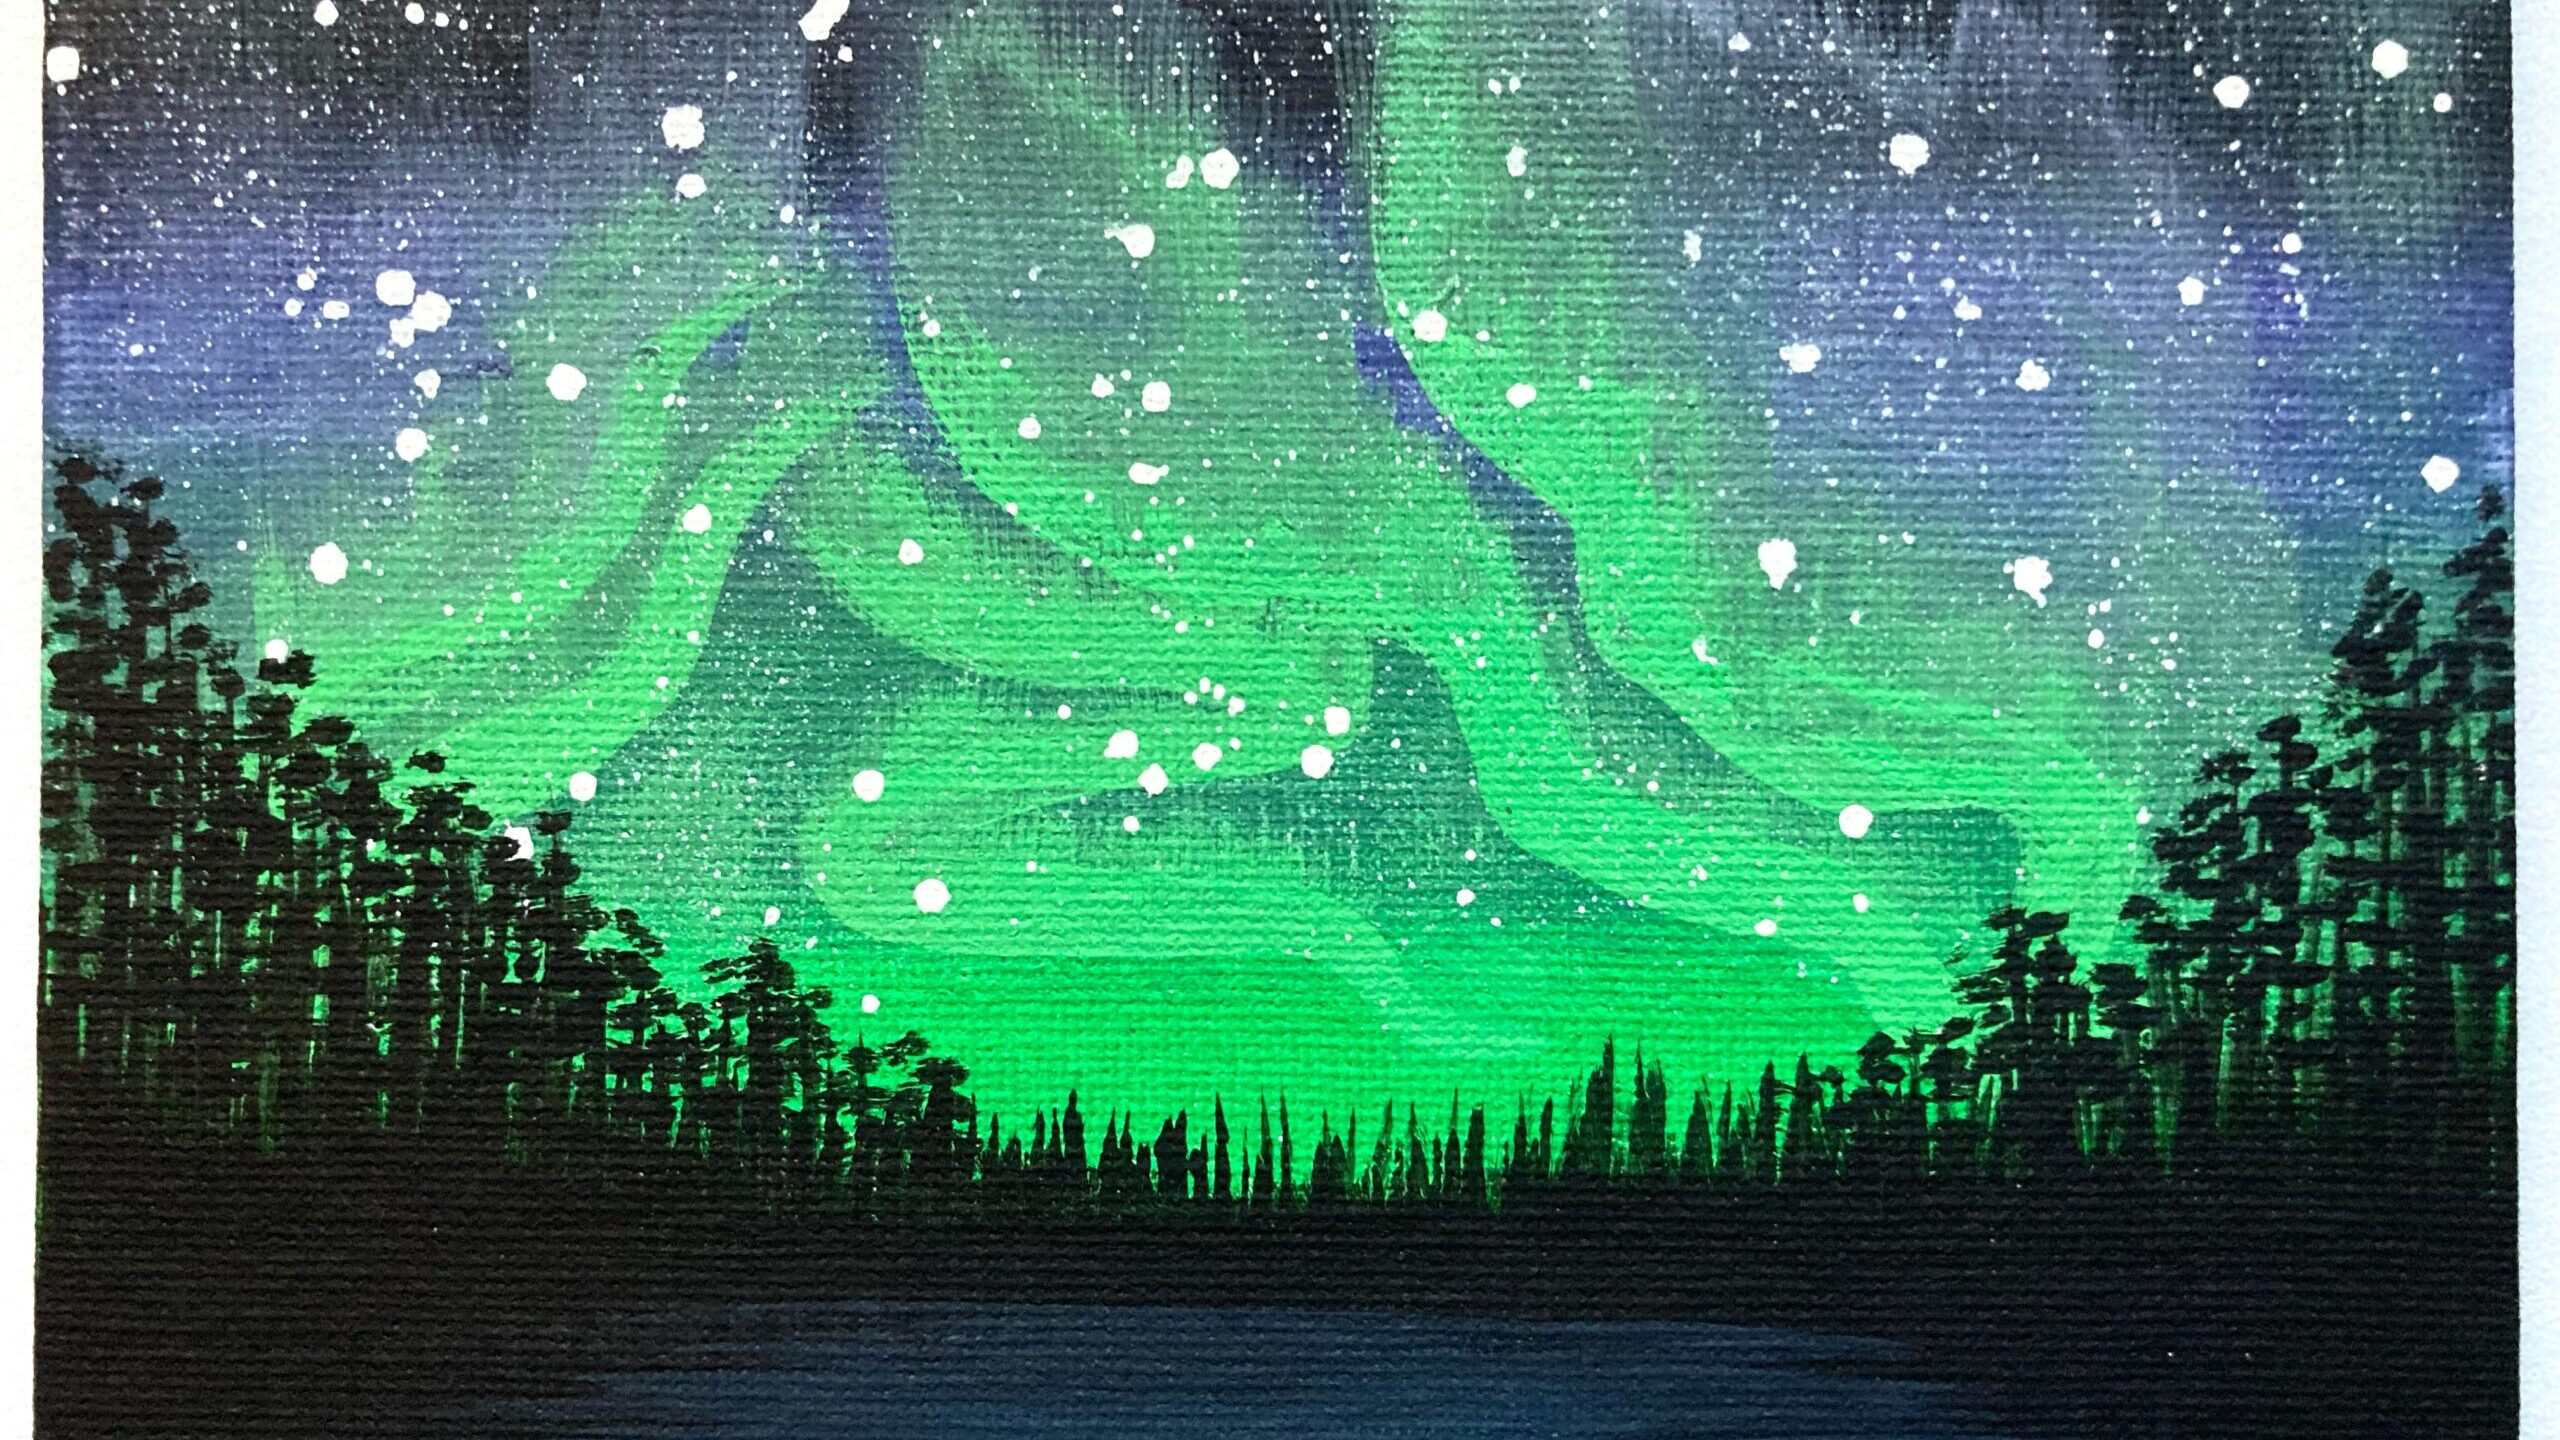 night time in the forest painting